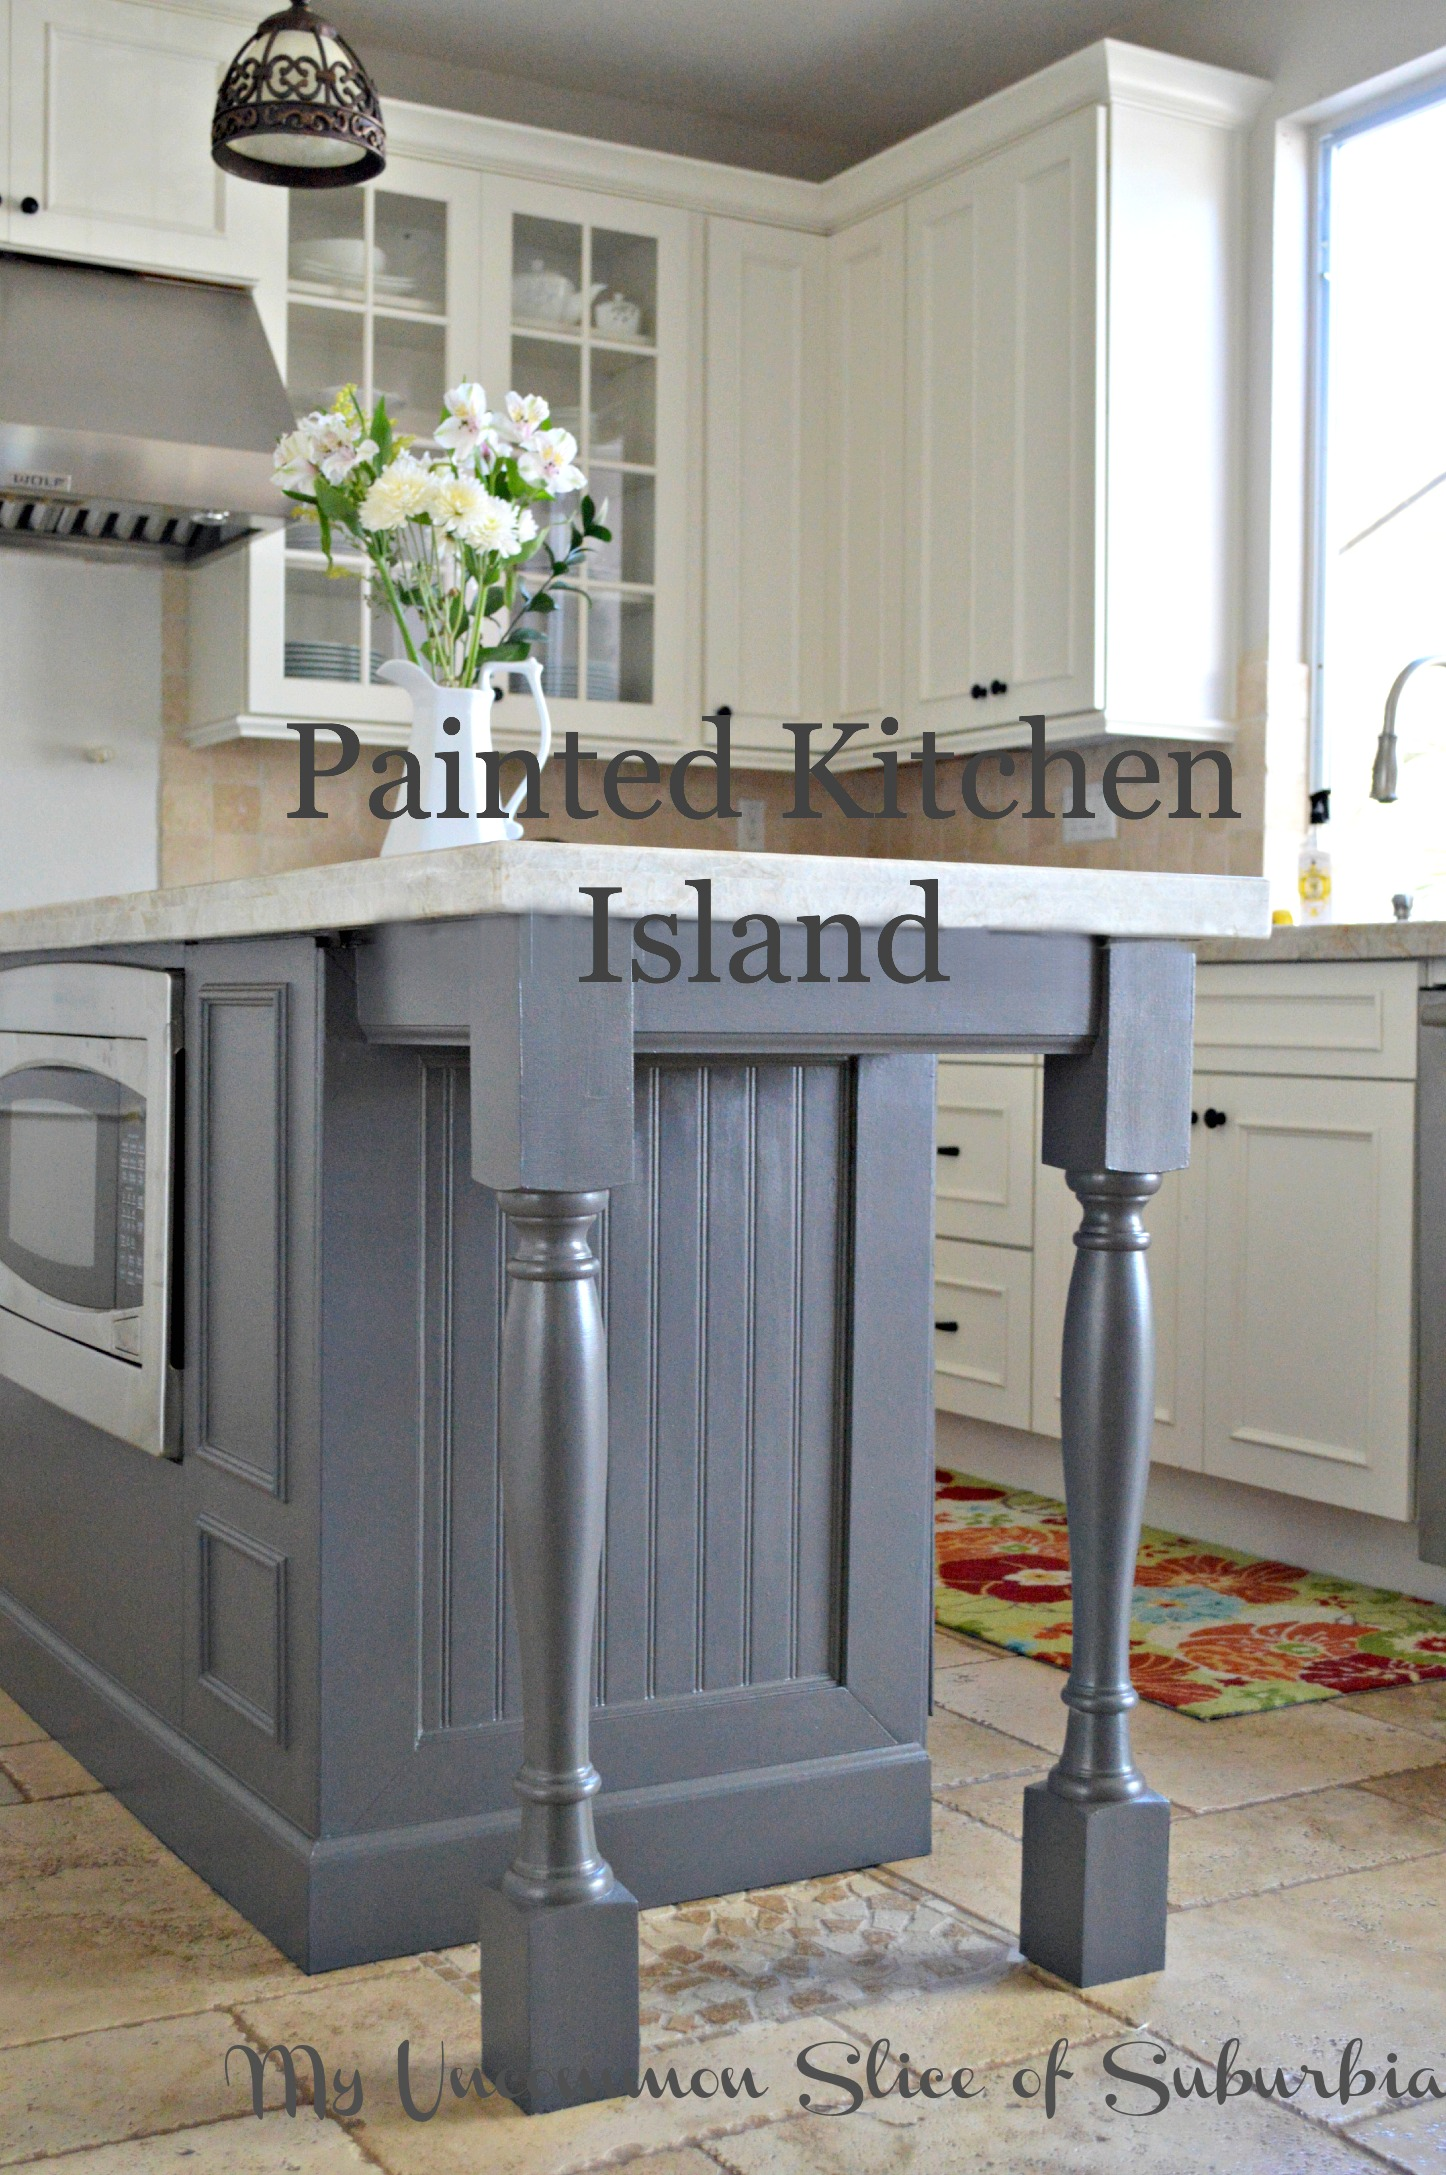 Ideal Kitchen Island Diy Pull Out Trashcan Kitchen Island How To Paint Green Painted Kitchen Islands Hand Painted Kitchen Islands kitchen Painted Kitchen Islands